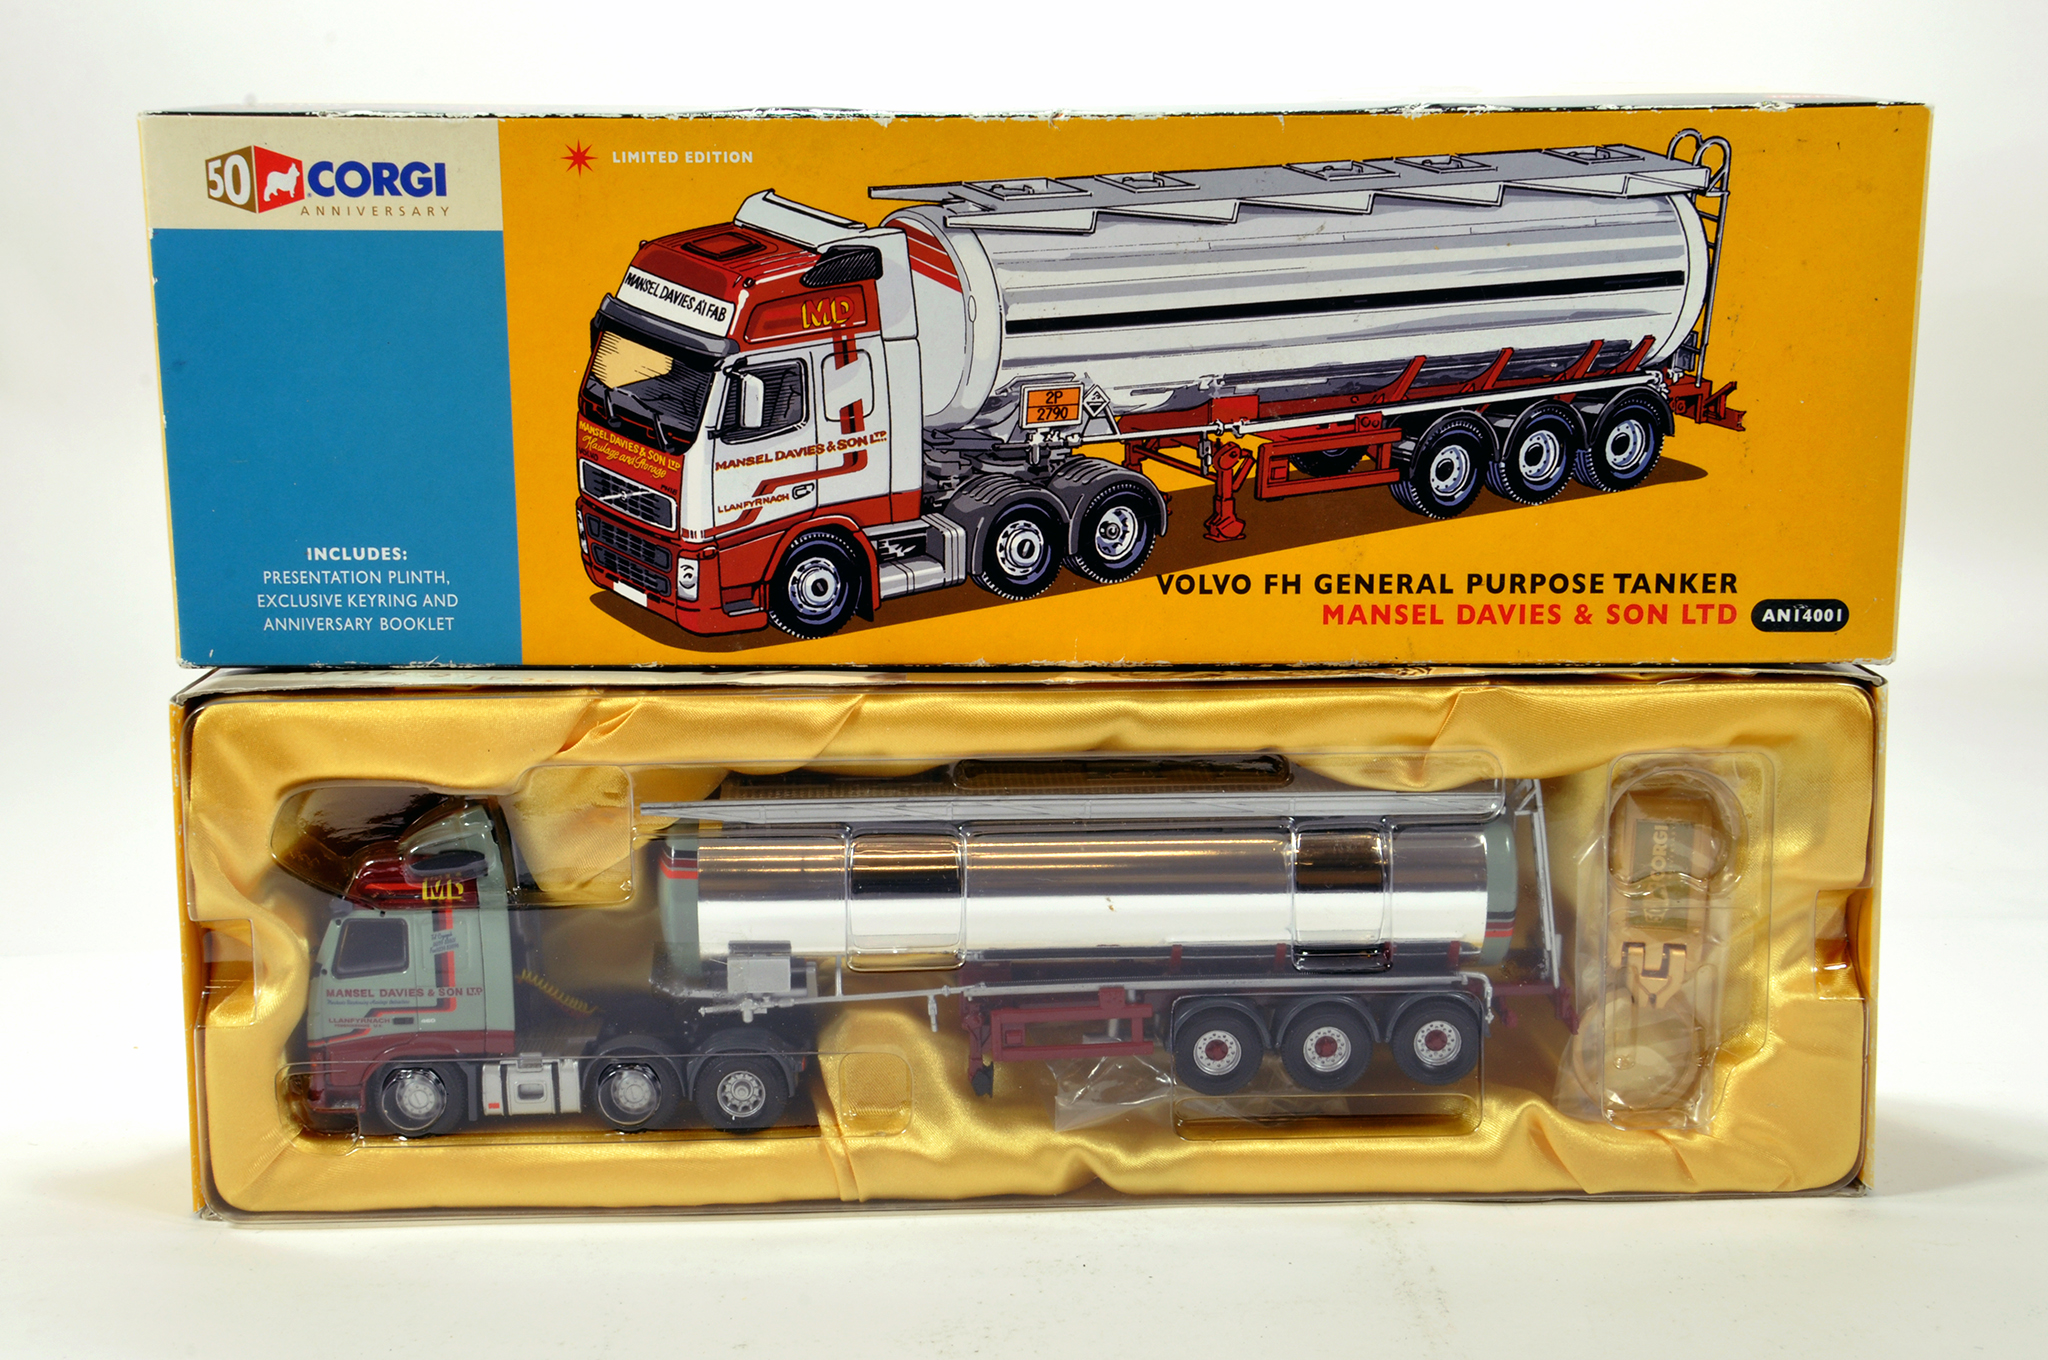 Lot 51 - Corgi 1/50 diecast truck issue comprising No. AN14001 Volvo FH General Purpose Tanker in livery of